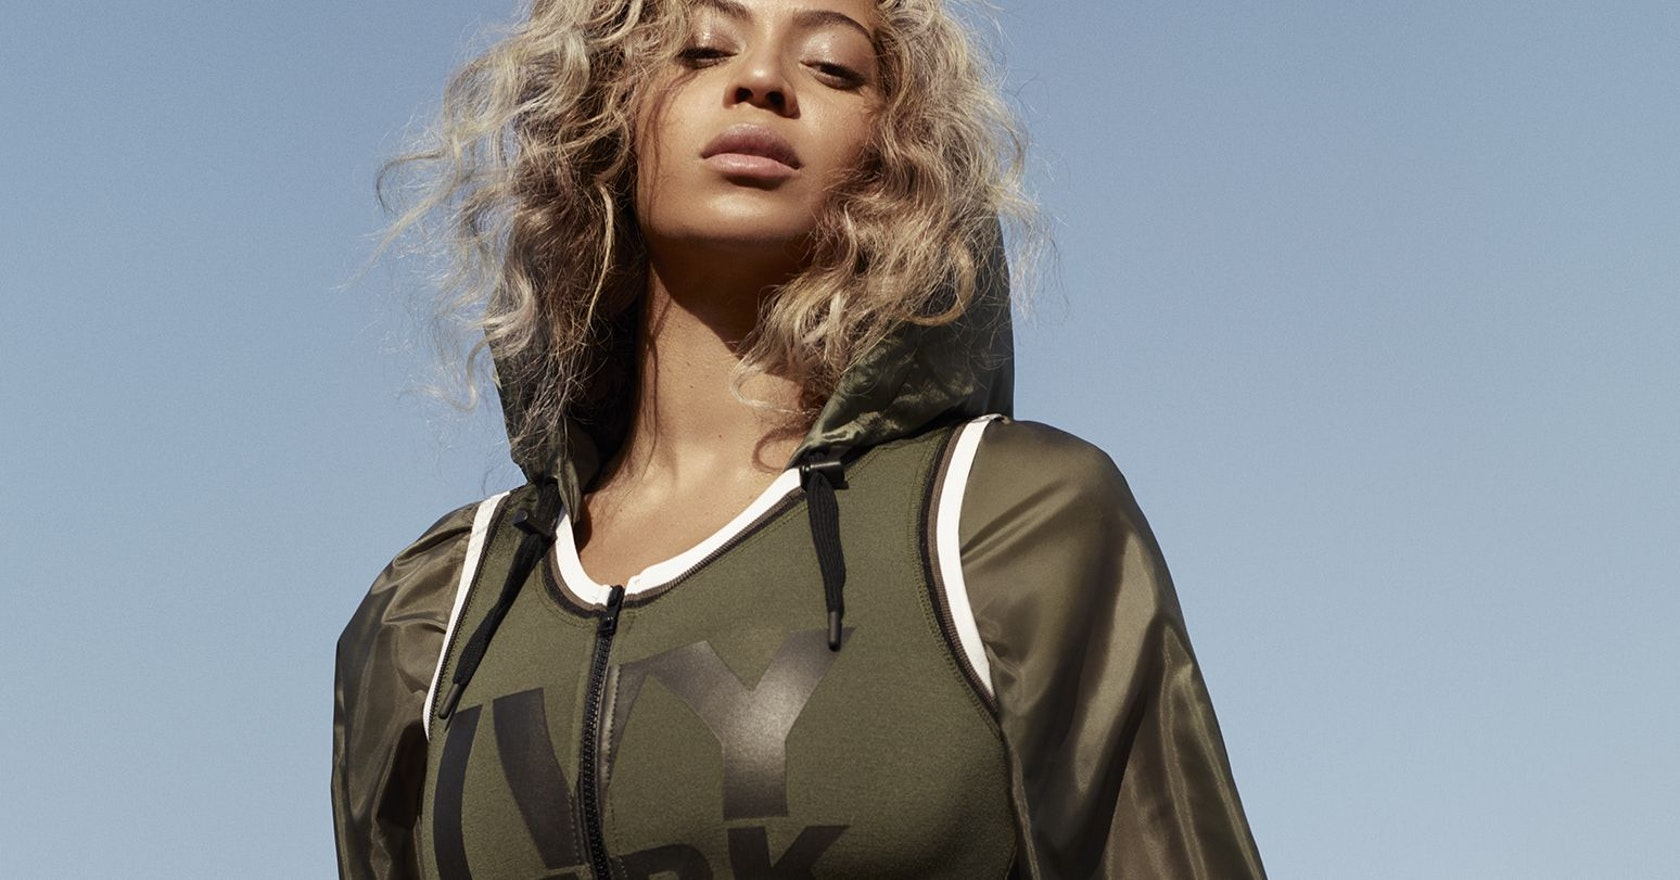 The Philip Green scandal isn't the only reason Beyoncé cut ties with Topshop